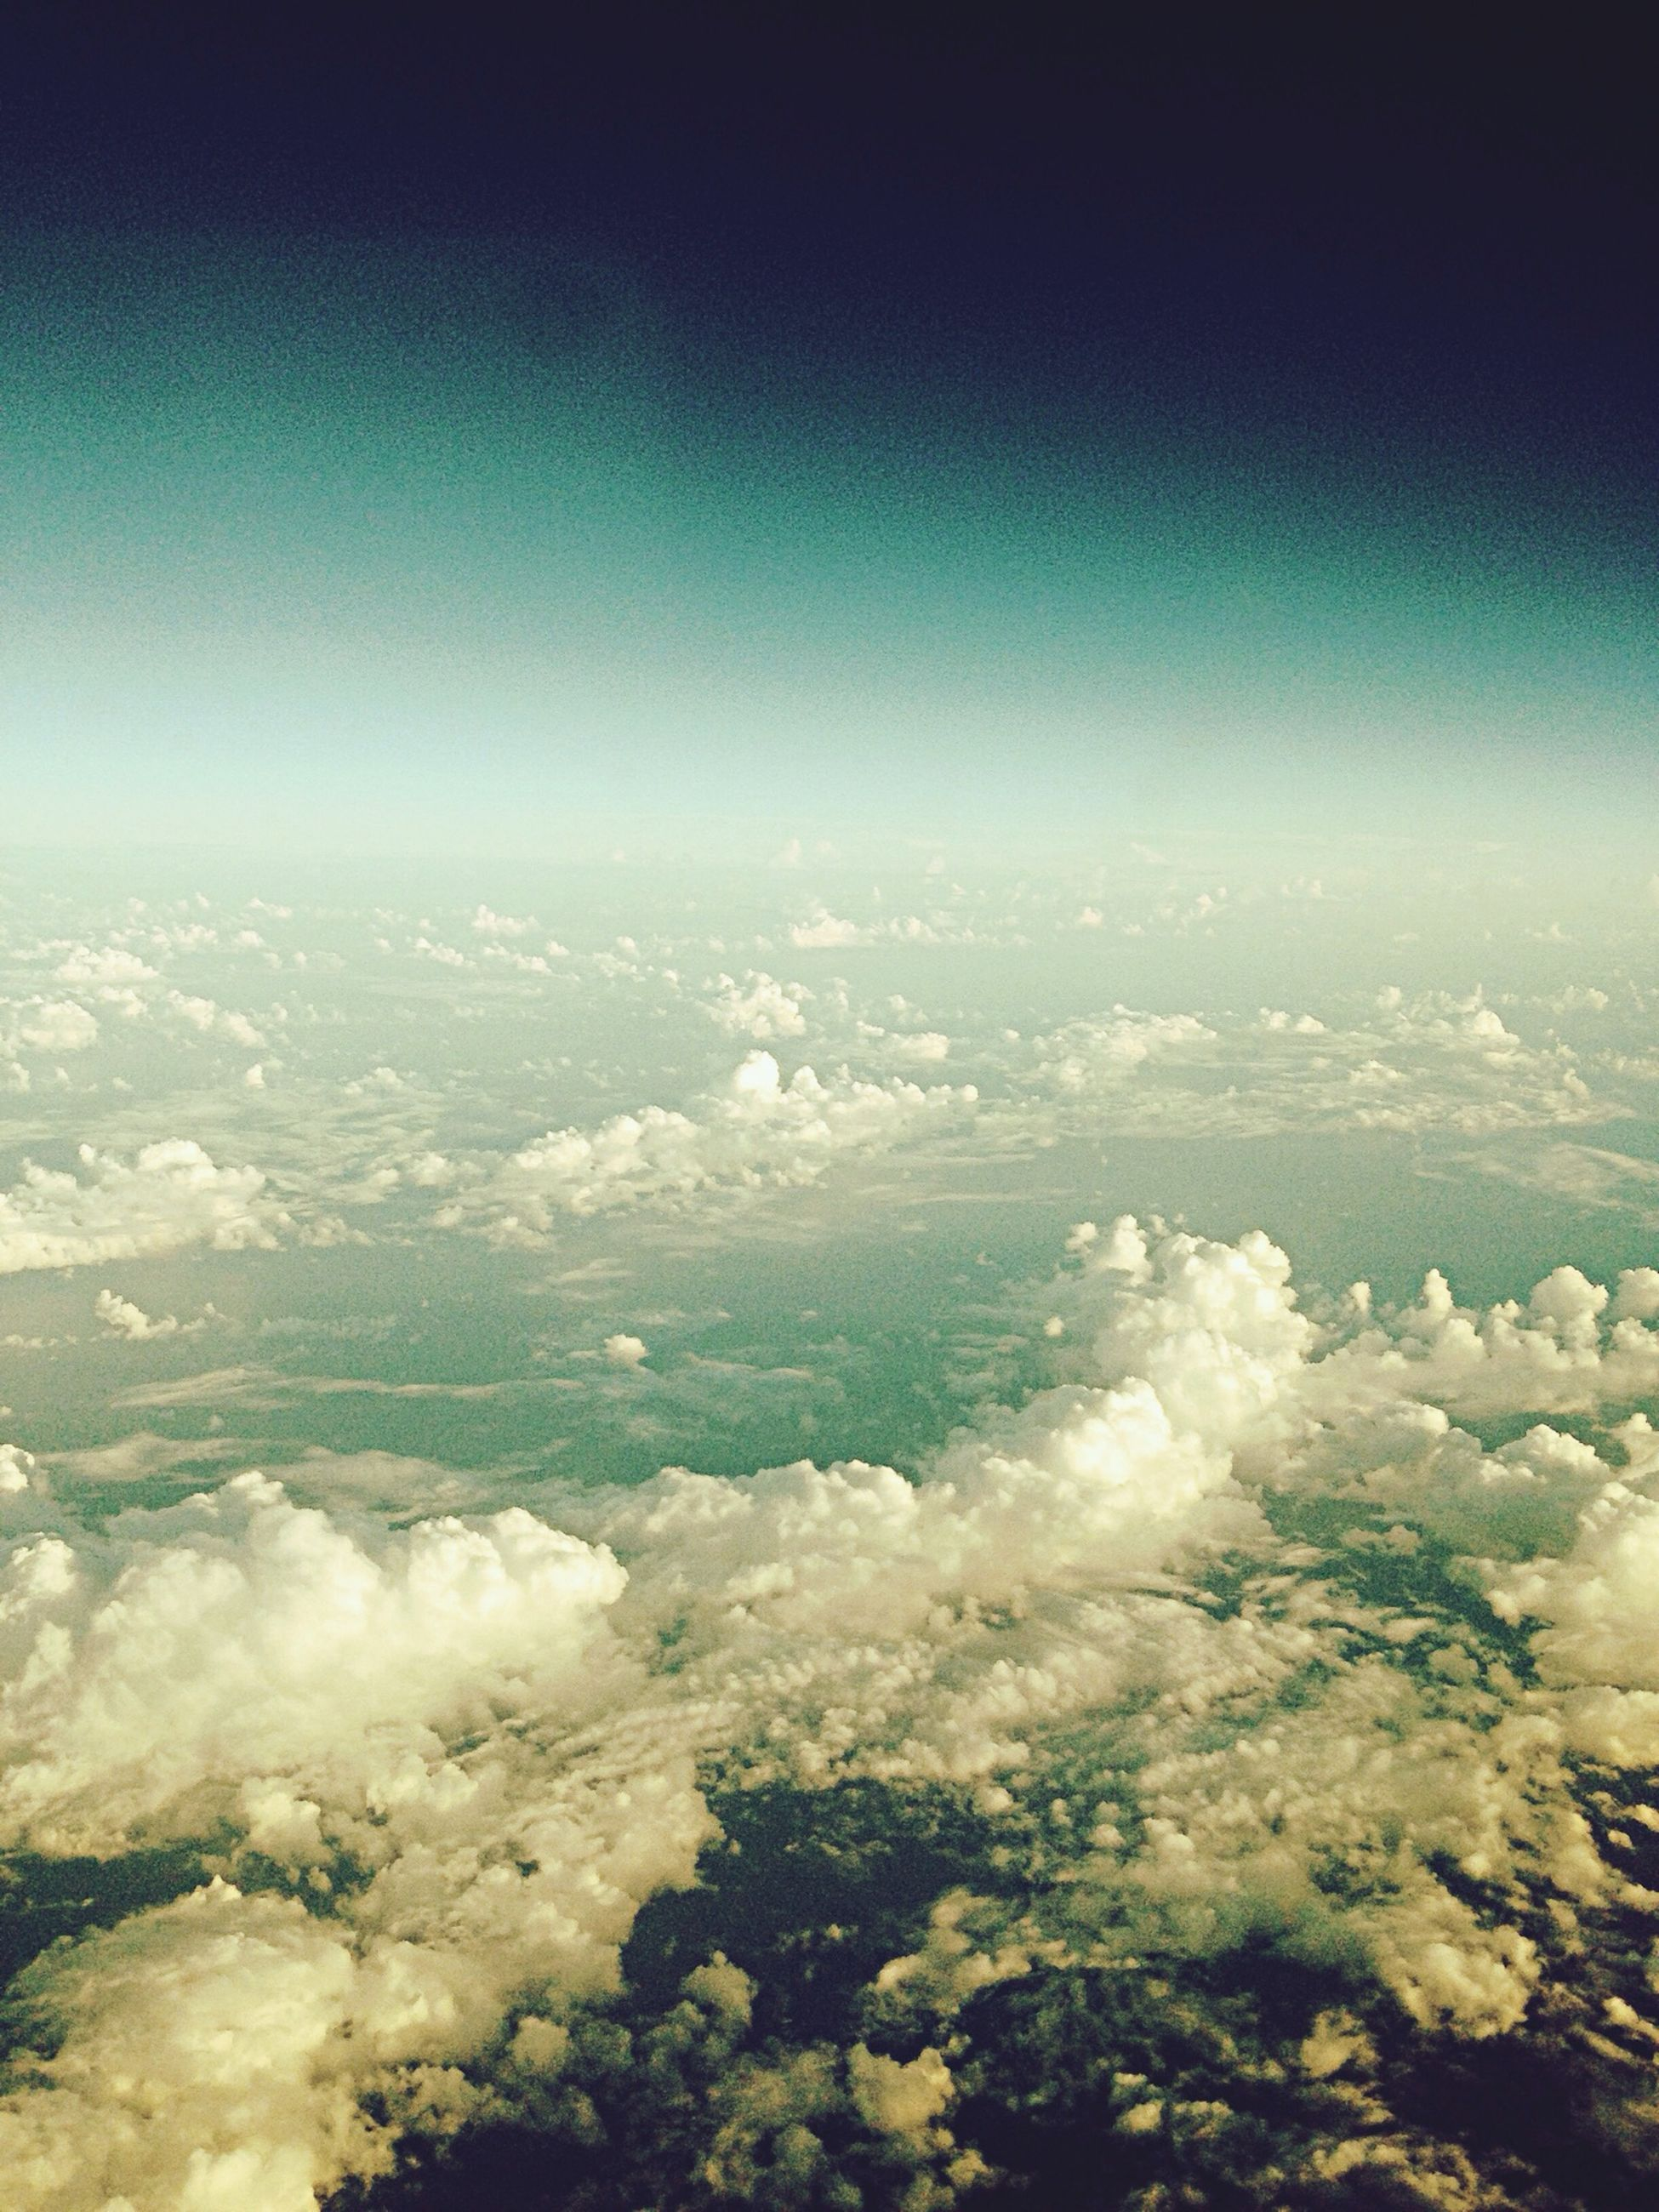 aerial view, scenics, beauty in nature, nature, sea, blue, tranquil scene, sky, tranquility, water, landscape, idyllic, day, no people, outdoors, white color, copy space, majestic, clear sky, airplane